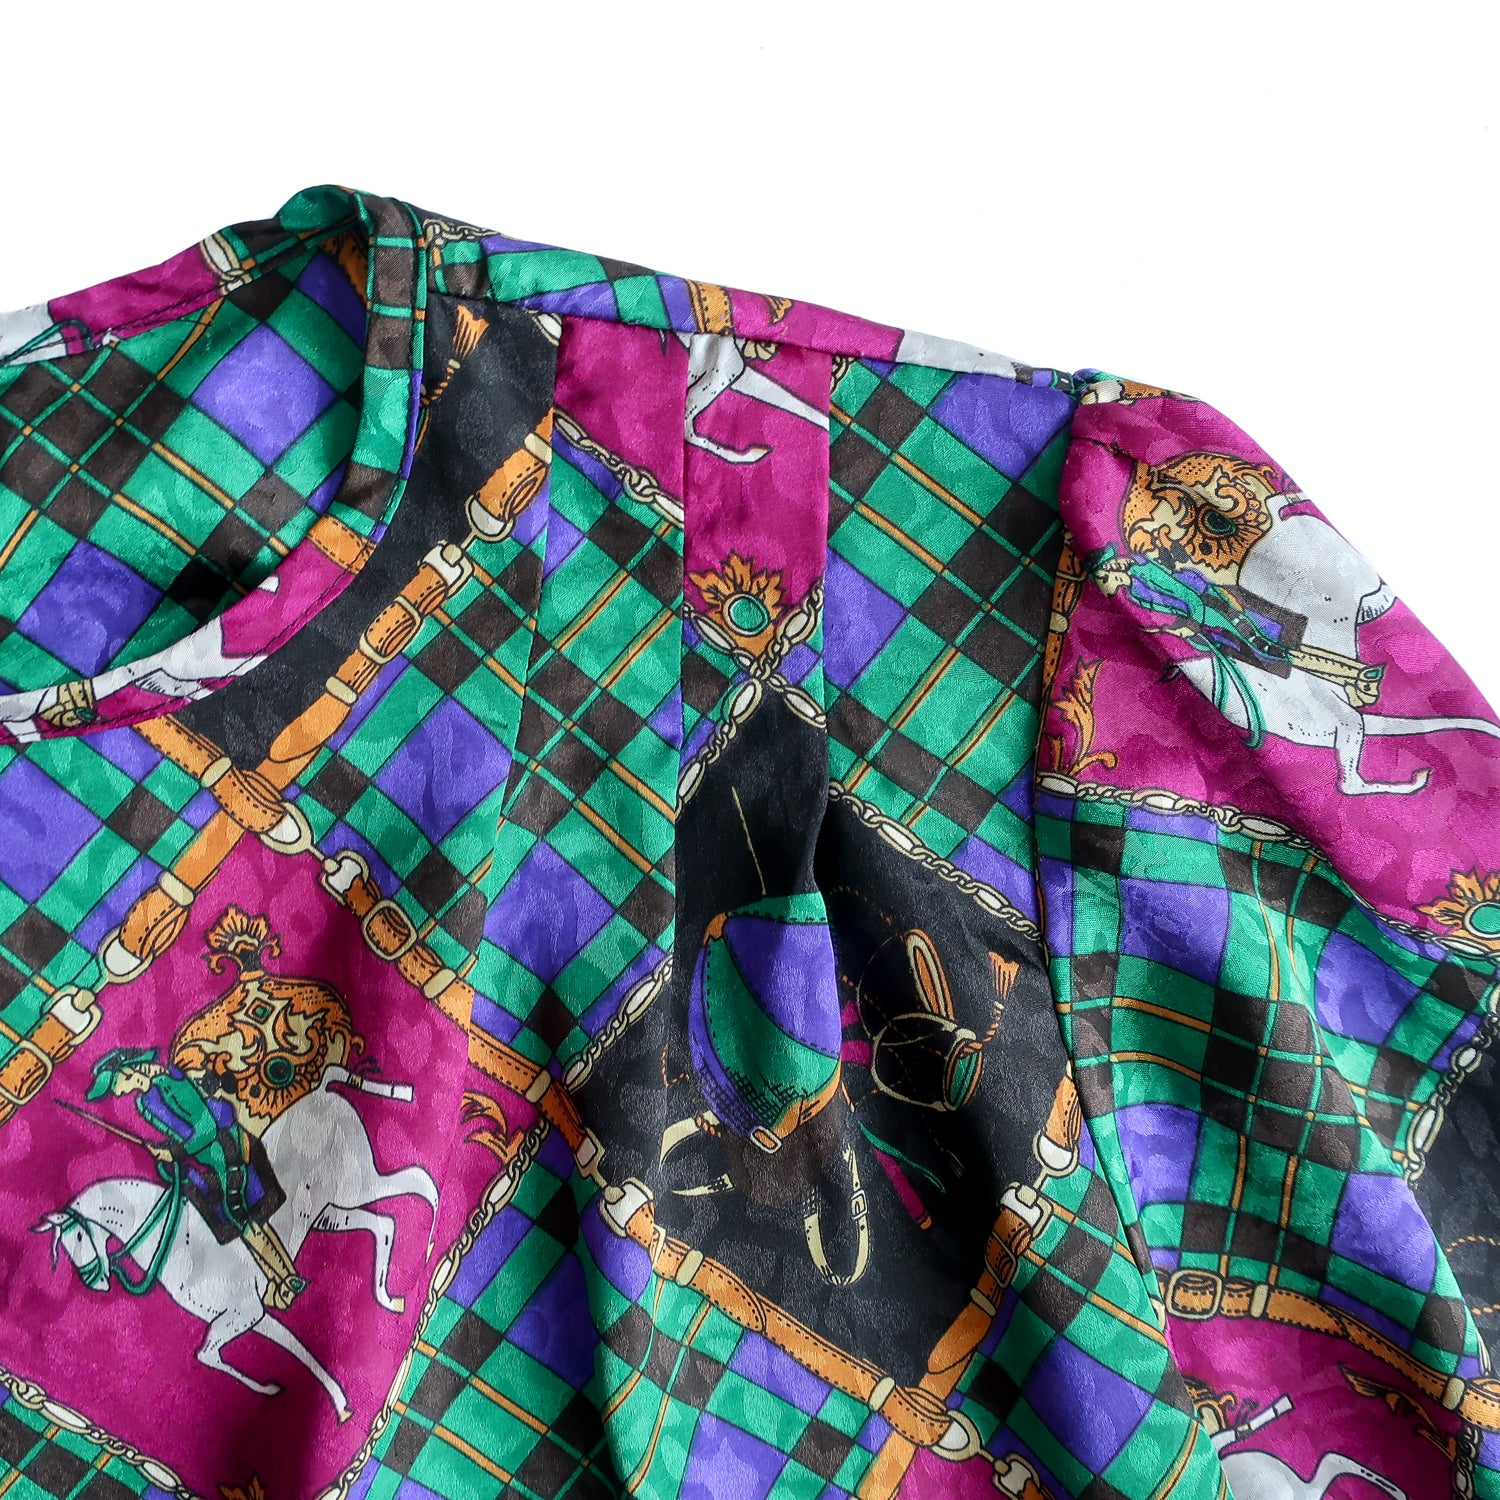 Second Room Shop Vintage. Shop vintage, shop sustainable. Vintage long sleeve blouse with the most amazing Gucci inspired equestrian print, in jewel tones of green, purple, blue, and gold. This blouse has a crew neck, with two buttons at the back of the neck for closure, and a lovely pleated detail at the front shoulders. It has one button at each cuff, and has shoulder pads, which could be easily removed.